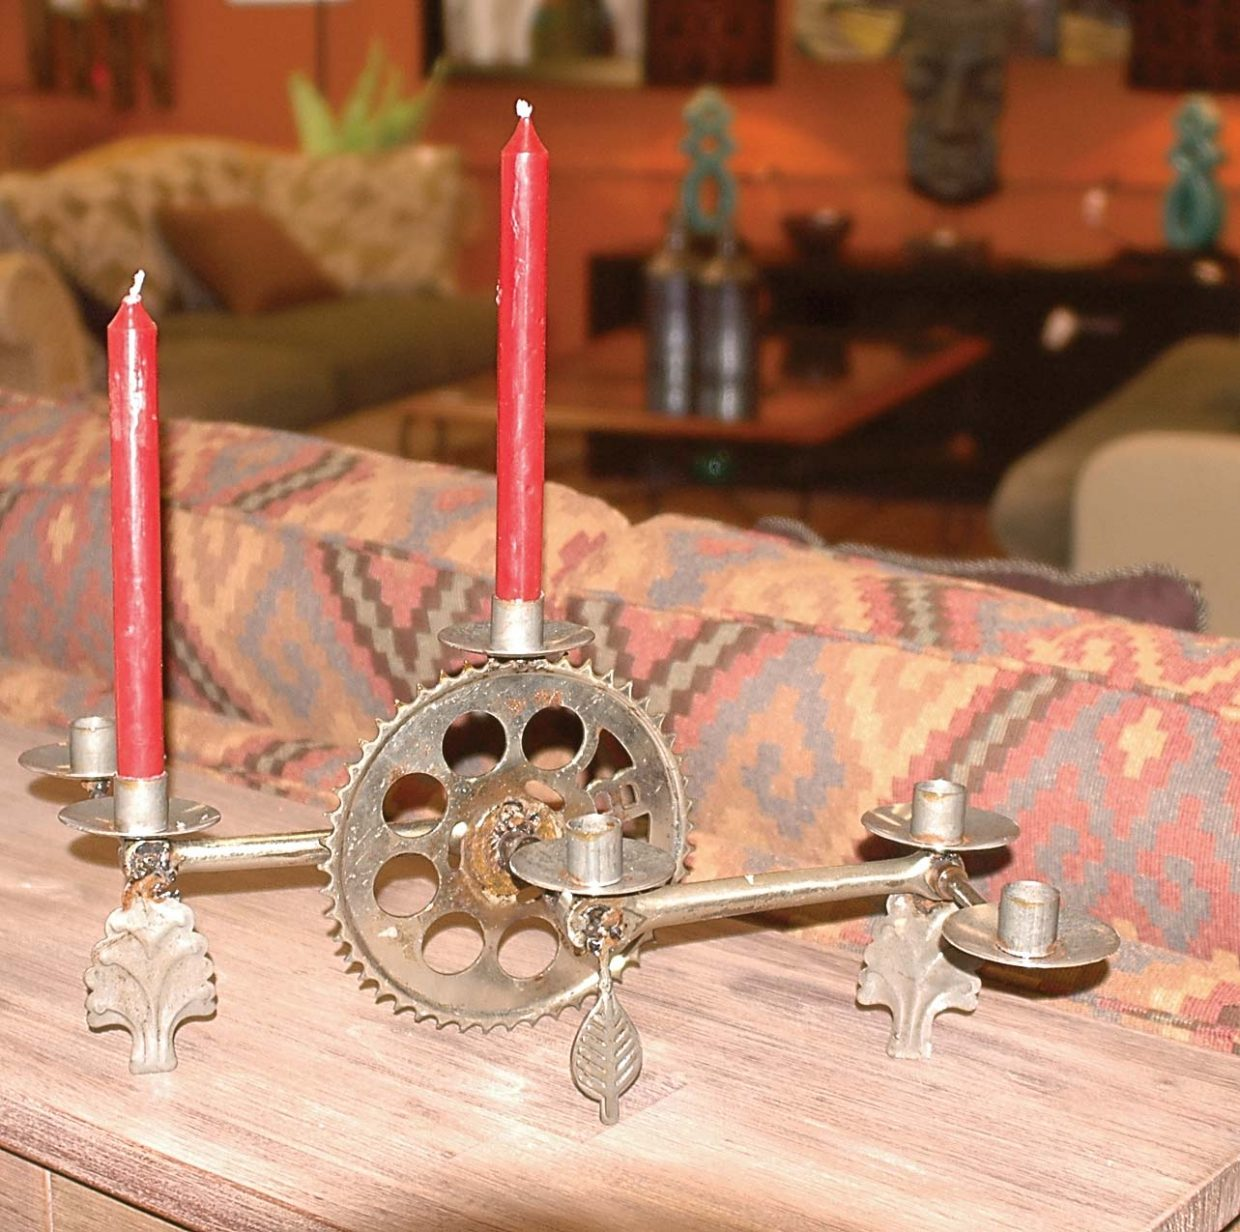 Candle holders made from recycled bicycle crank sets are among the novel items to be discovered at Steamboat Moxie Home Consignments and Design.